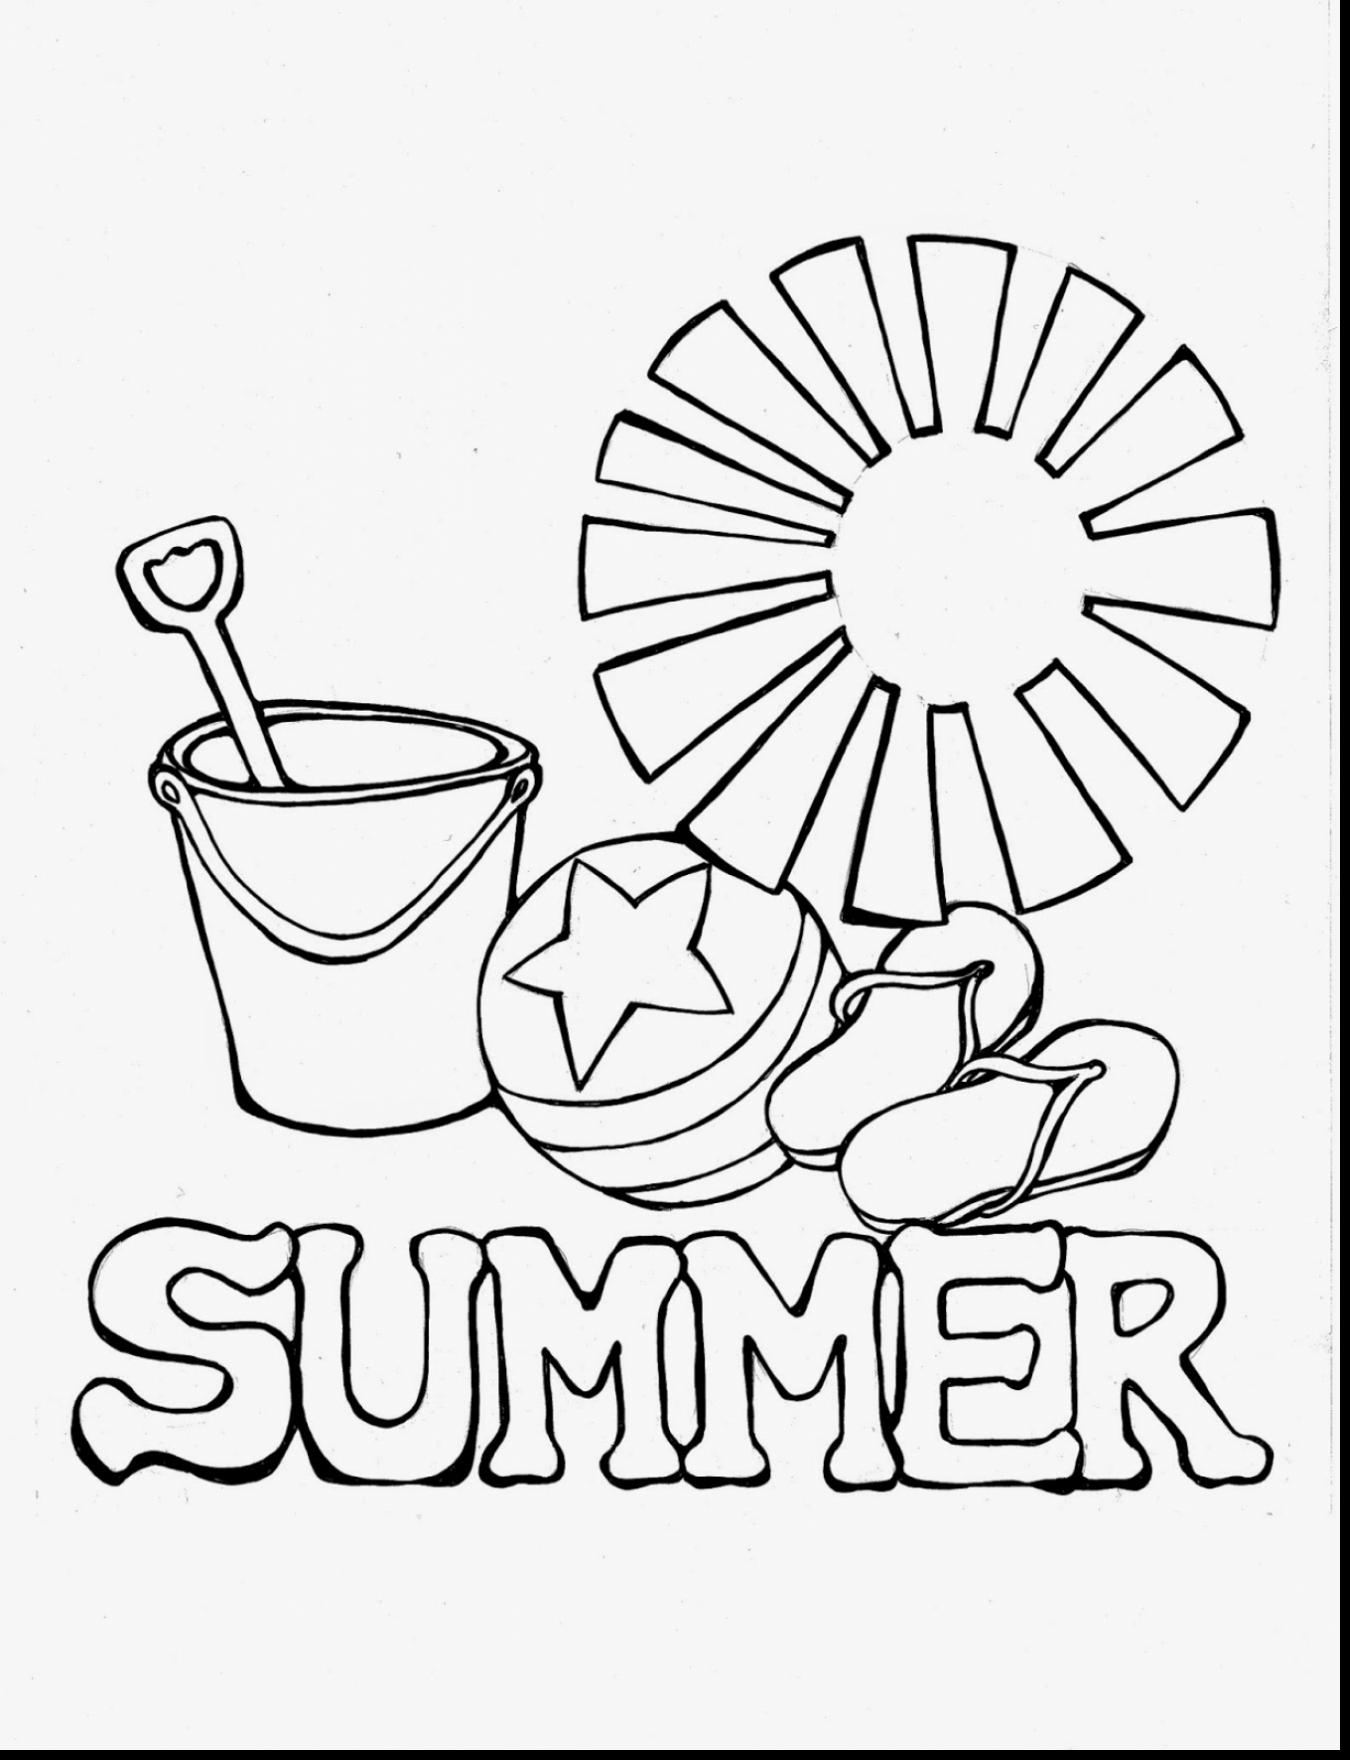 Summer Reading Coloring Pages - Reading Coloring Pages Kindergarten Reading Coloring Pages Reading